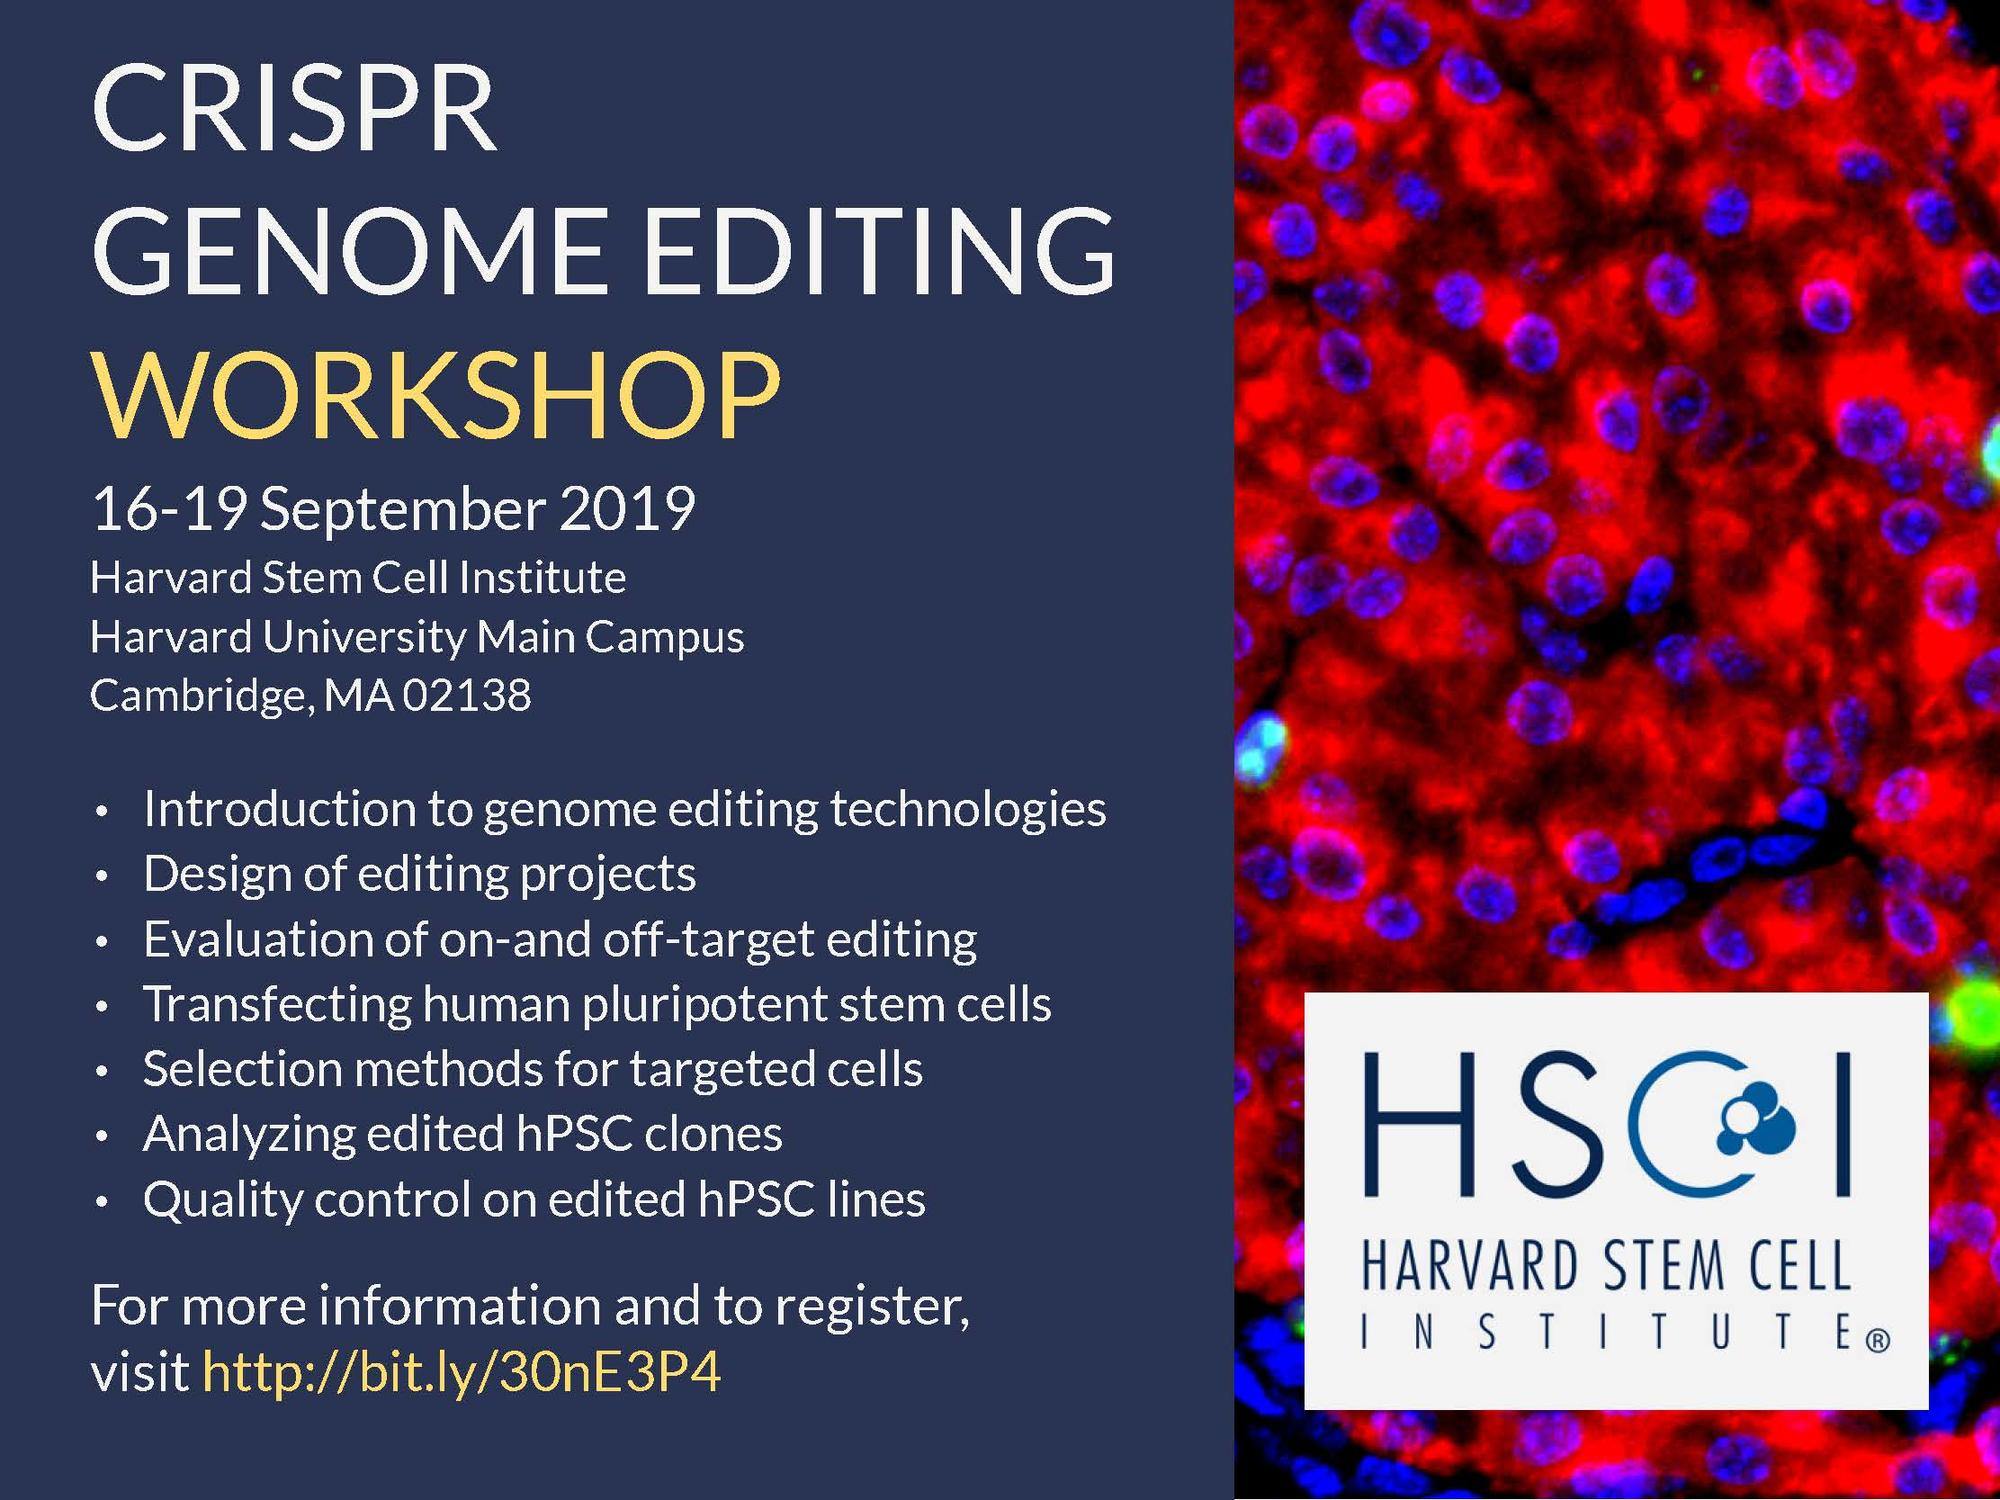 Image of CRISPR workshop flyer